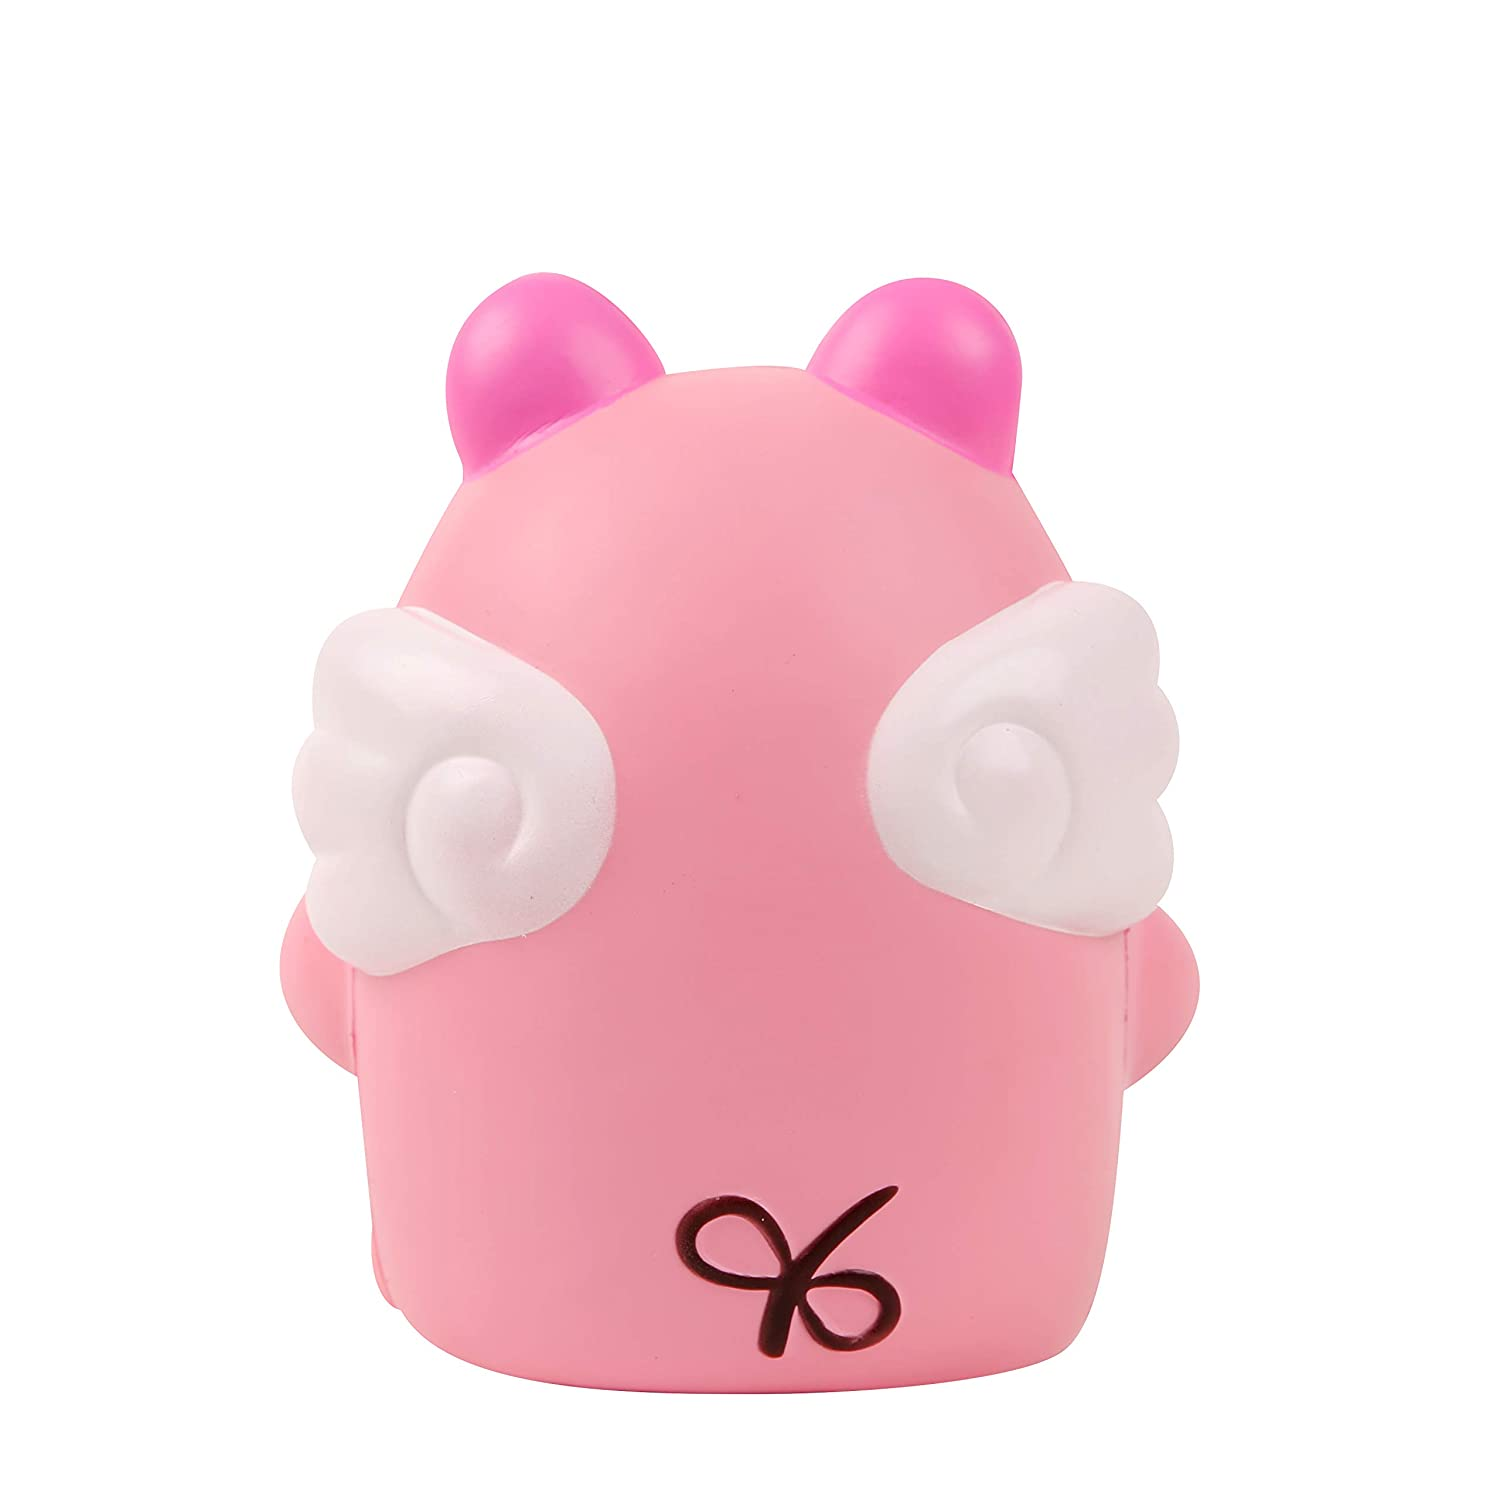 Anboor Squishies Jumbo Kawaii Scented Soft Slow Rising Giant Squishies Stress Relief Kids Toy Gift Collection Decorative Props